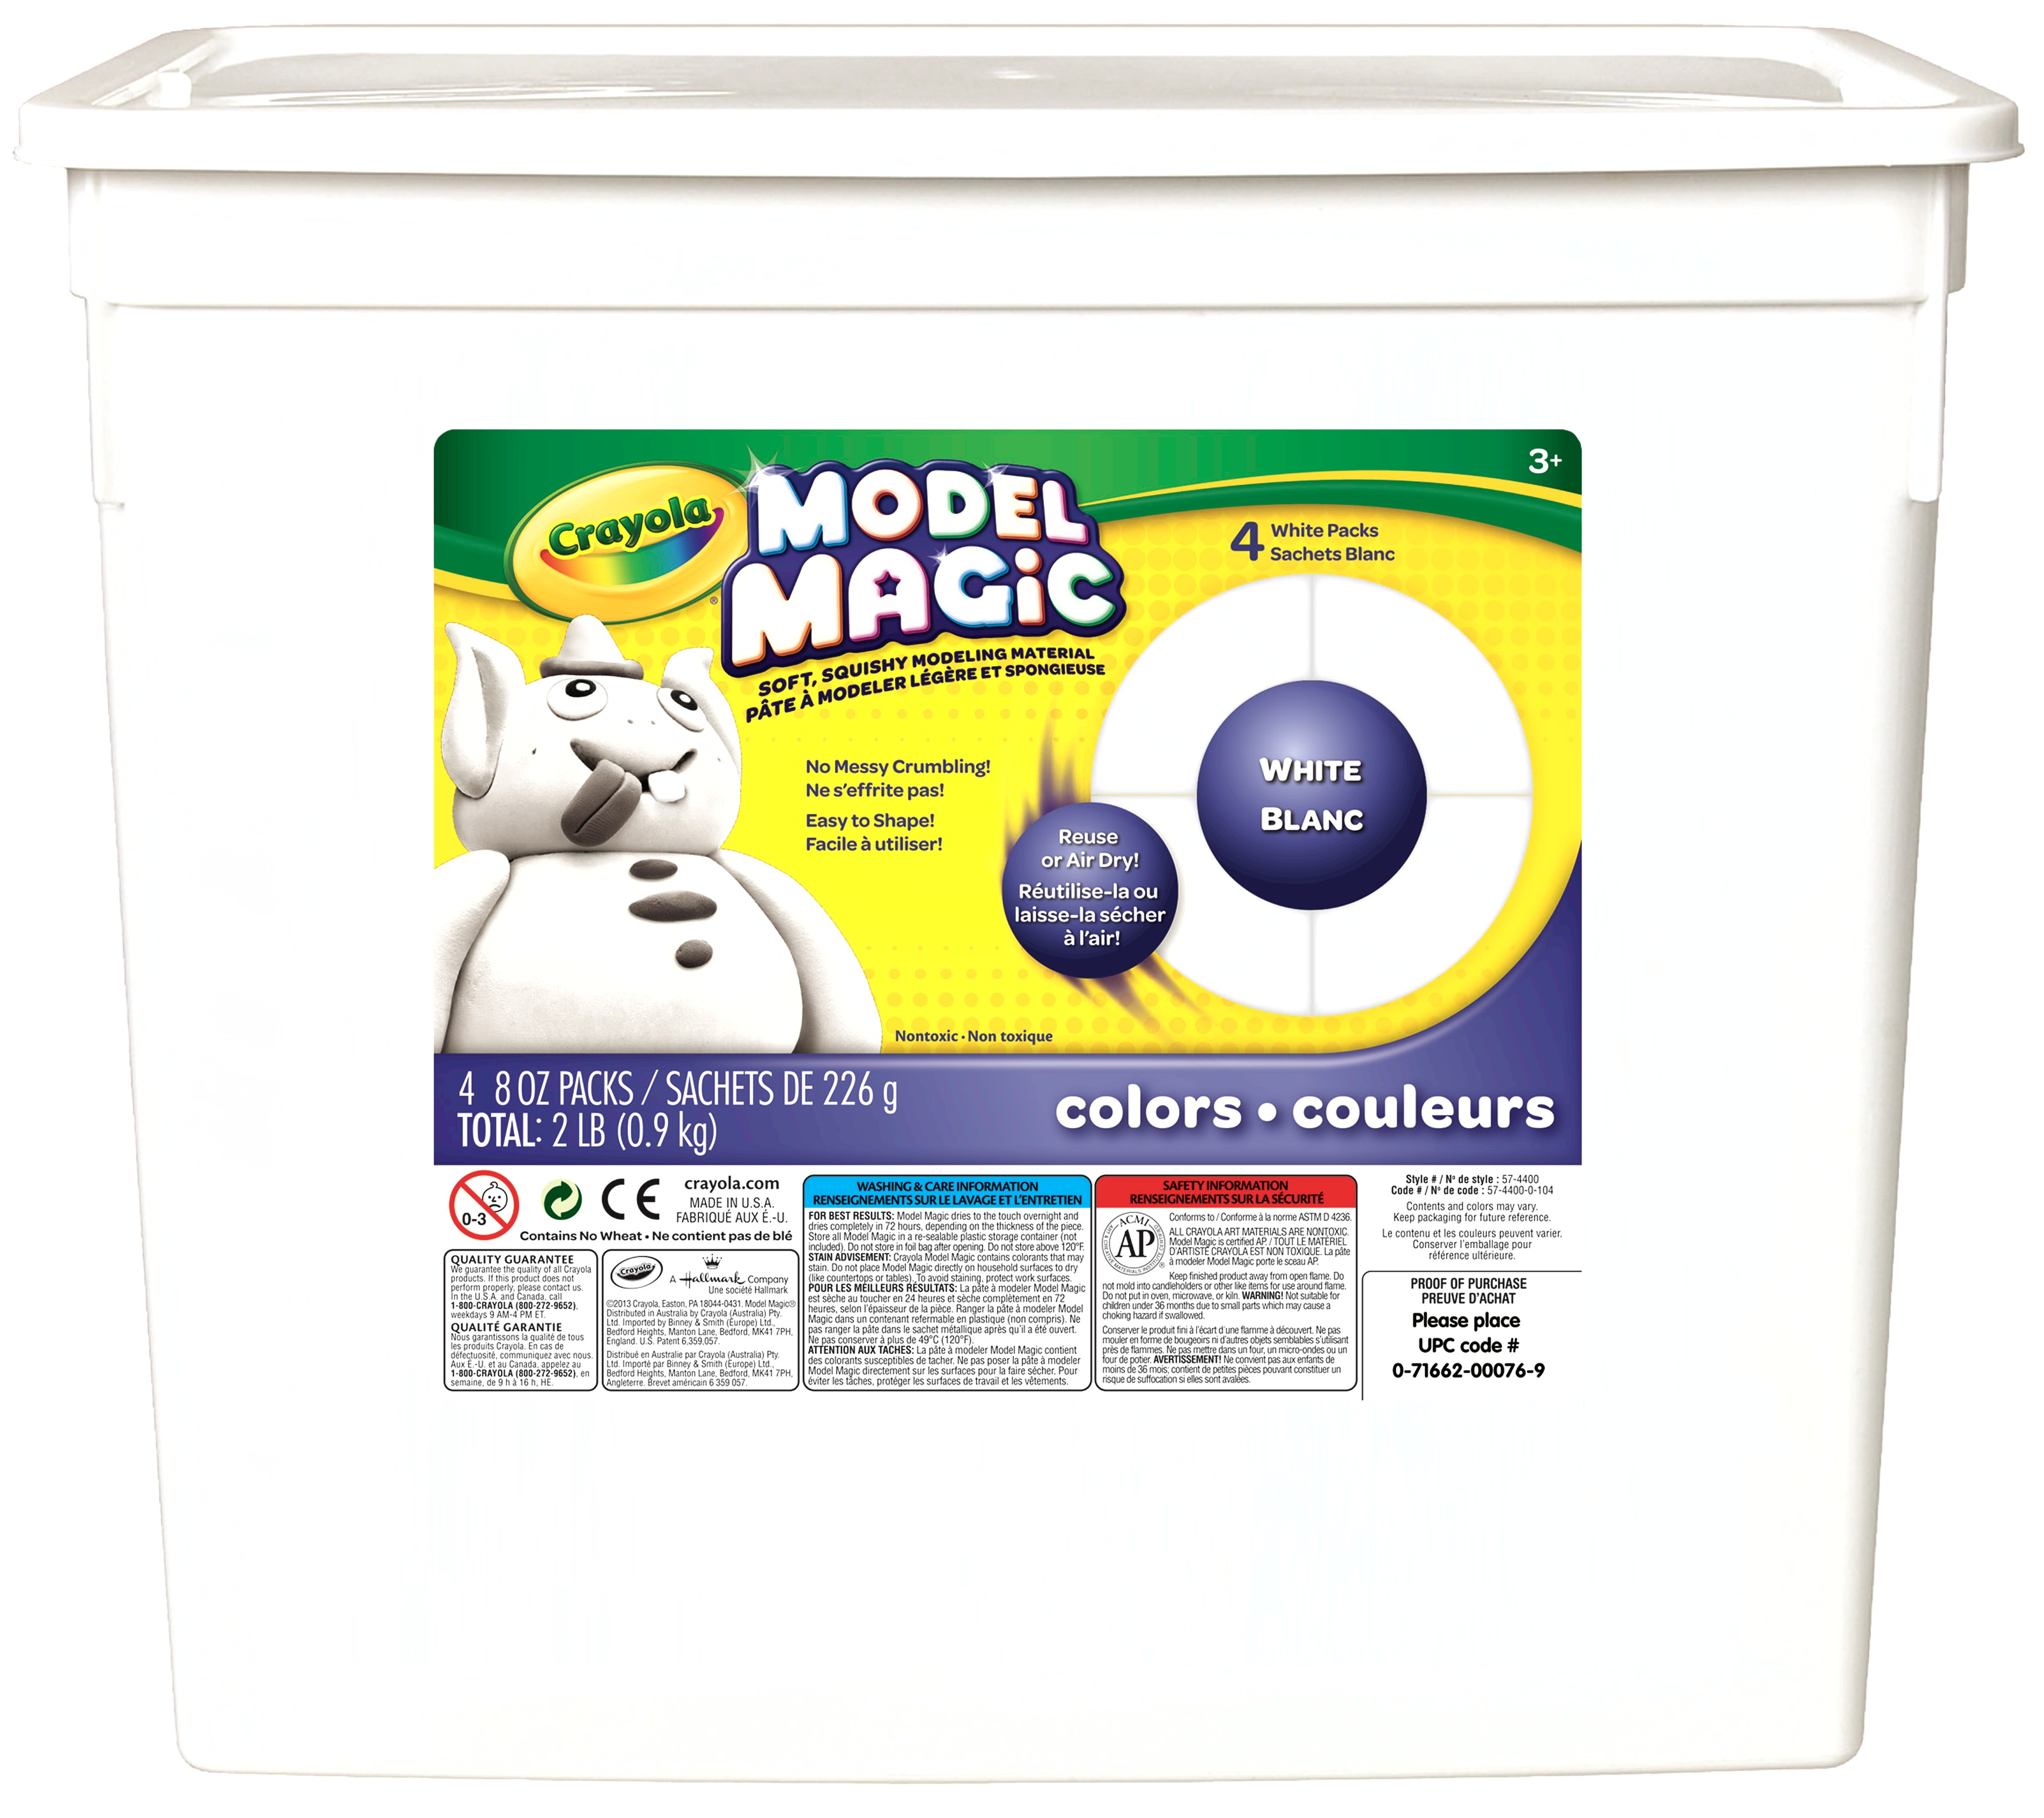 Crayola Model Magic, White Clay Alternative, DIY Slime Ingredient, 2lb by Crayola